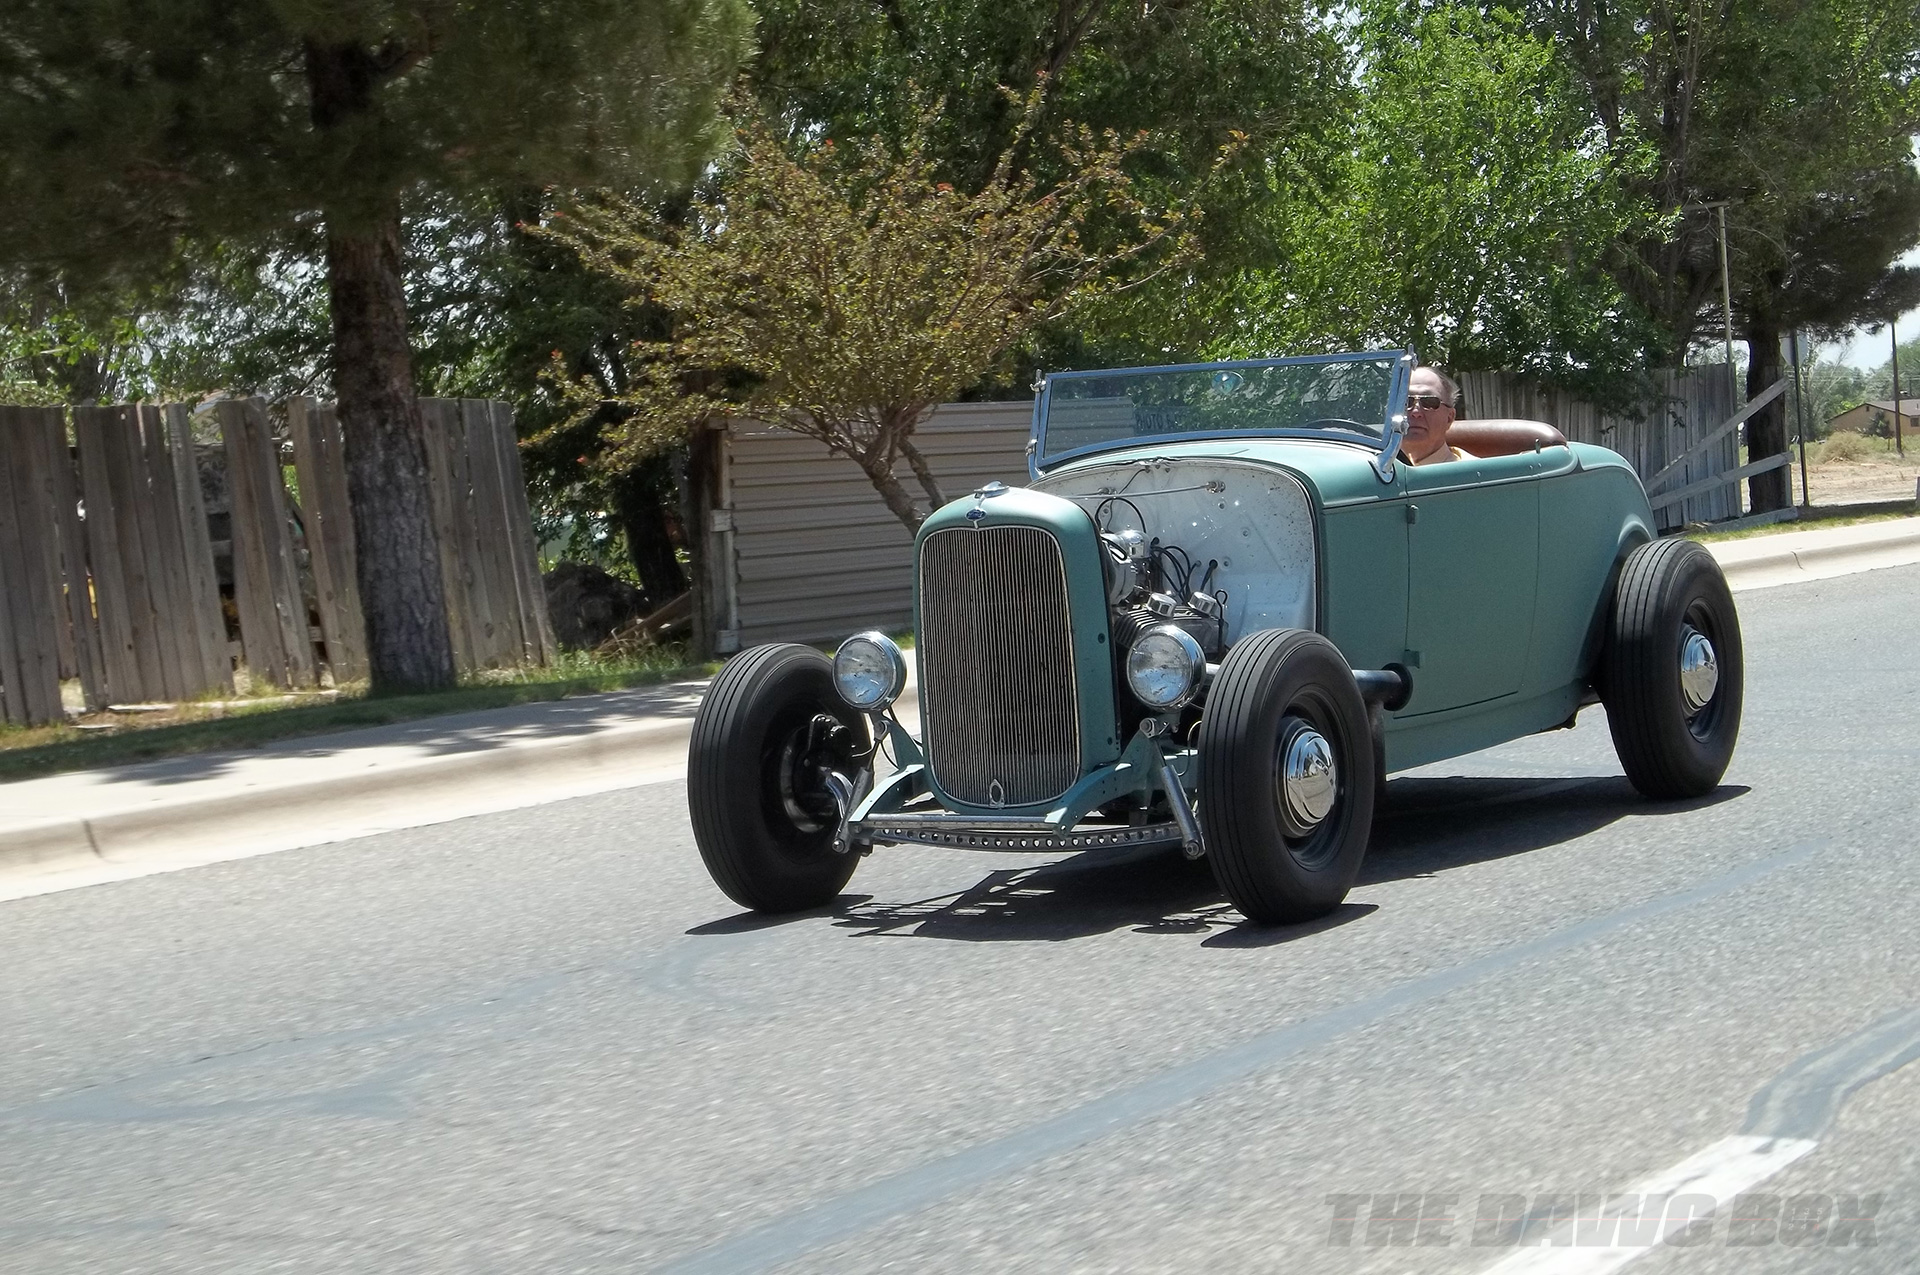 Henry Astor's '32 Ford Roadster  on the road